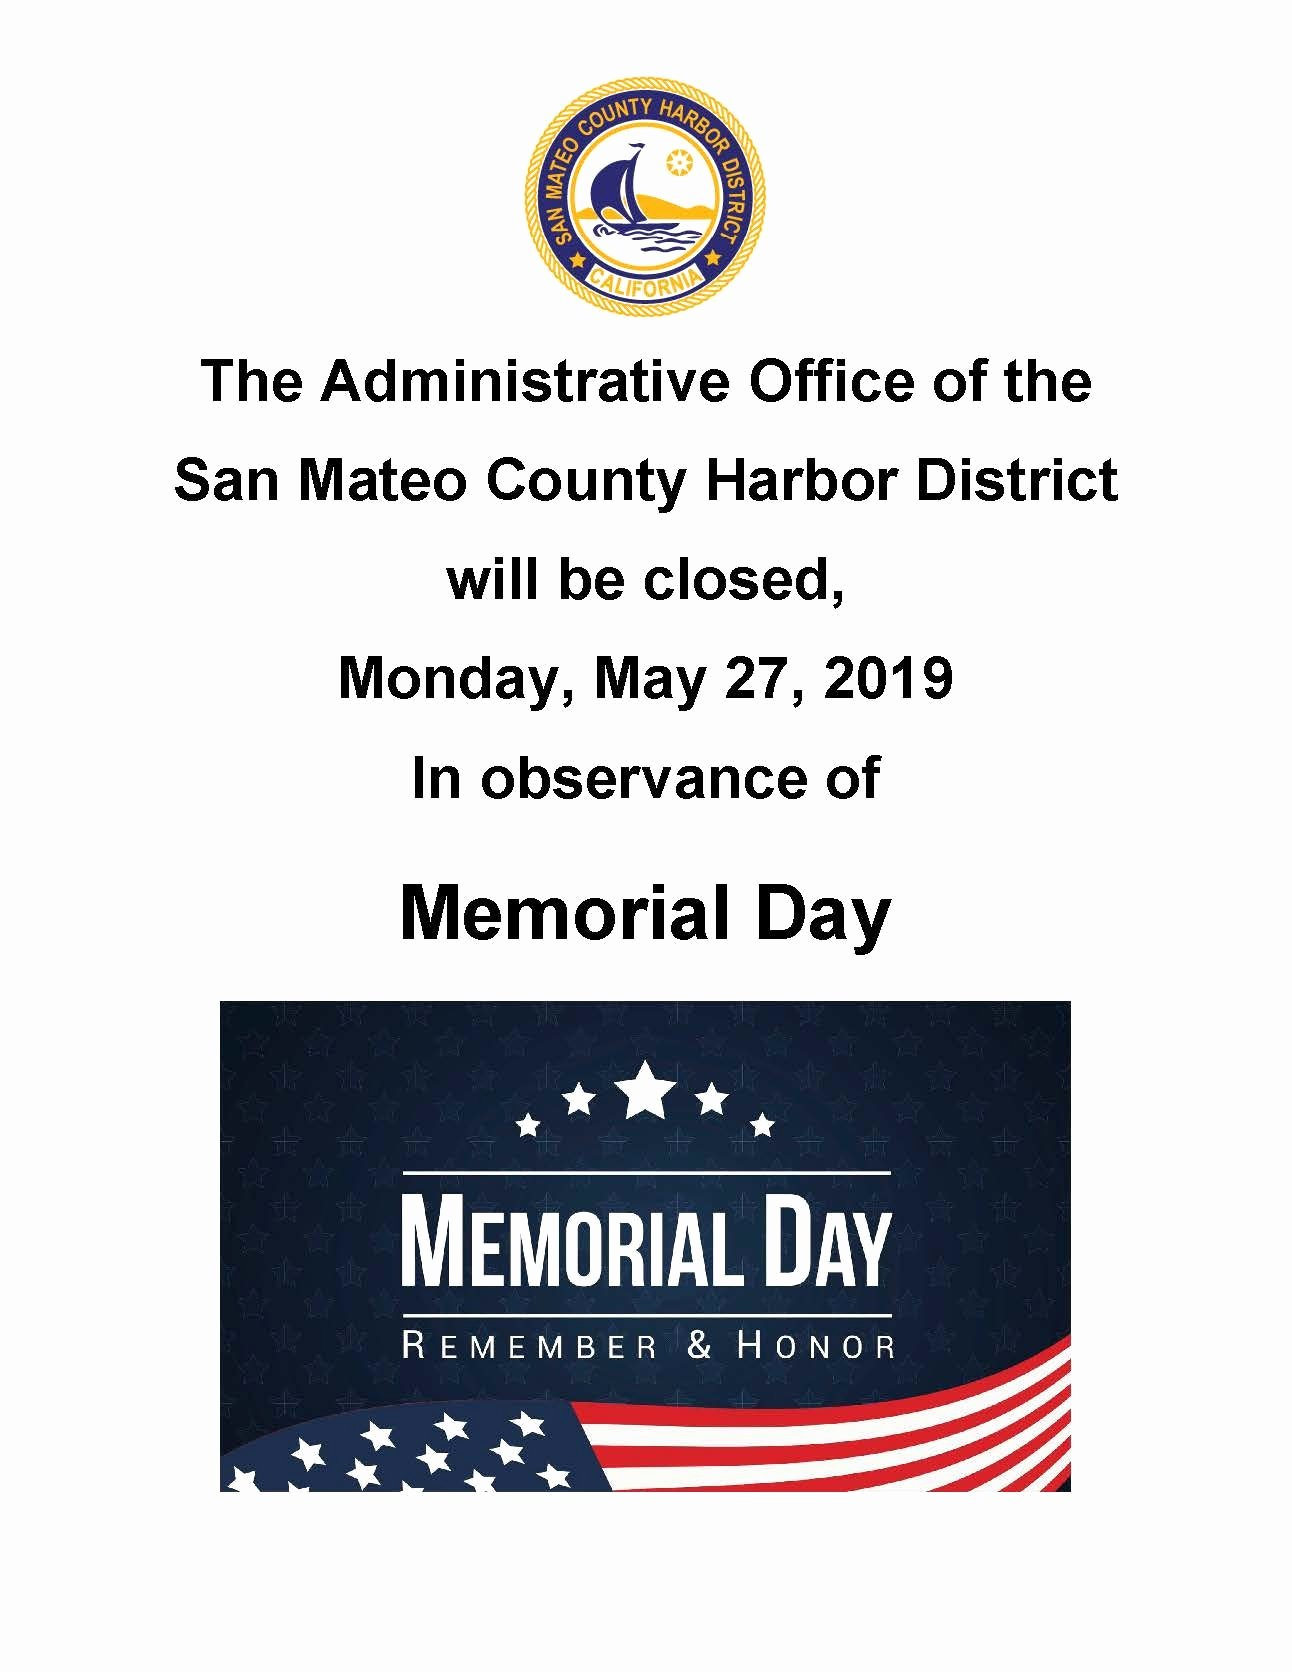 Memorial Day Closed Sign Template Beautiful Admin Fice Closed Memorial Day San Mateo County